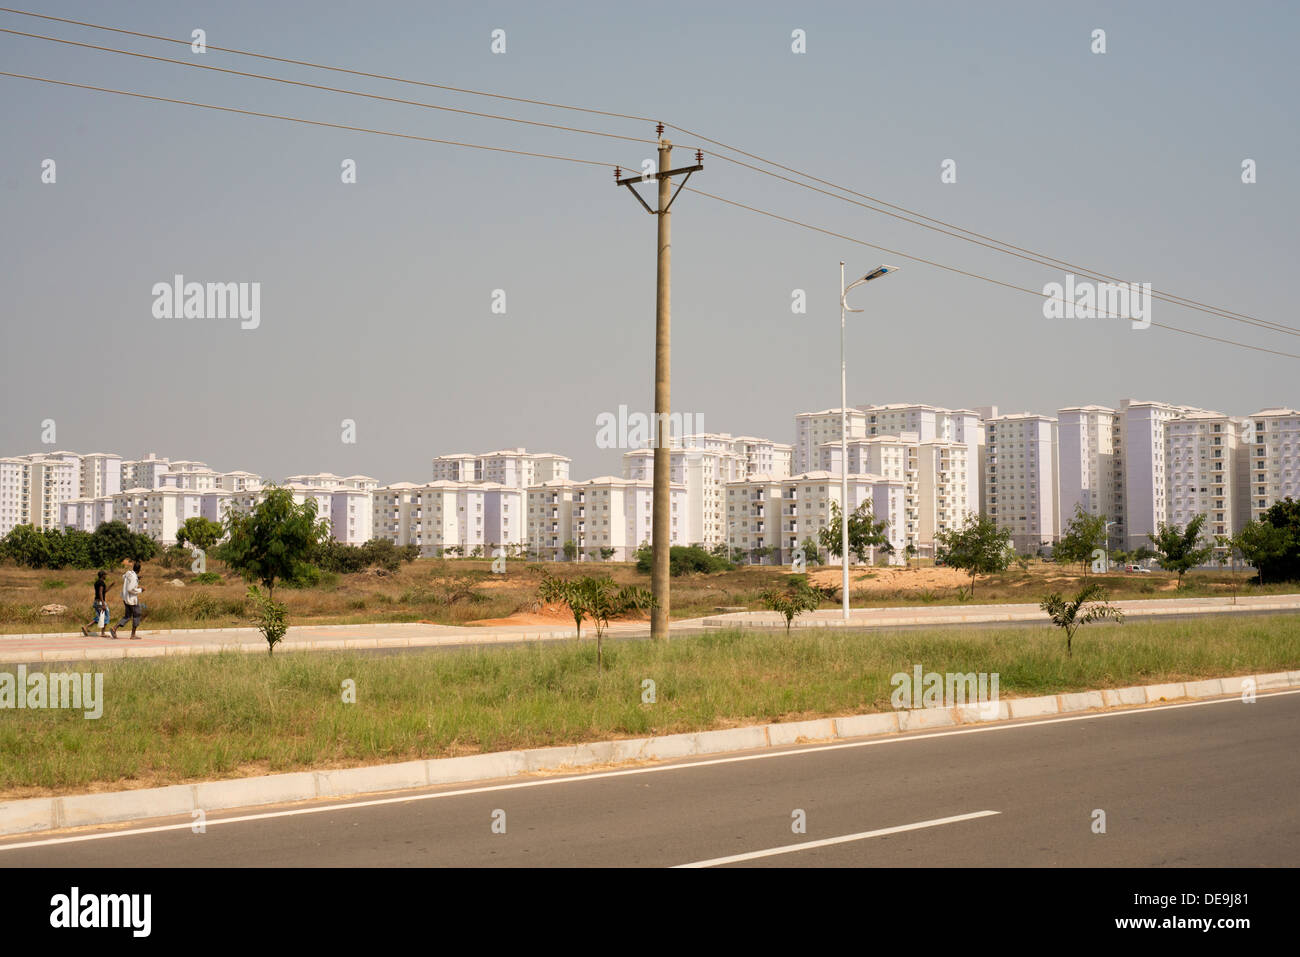 The new town, Nova Cidade de Kilamba, Luanda, Angola built by China - Stock Image